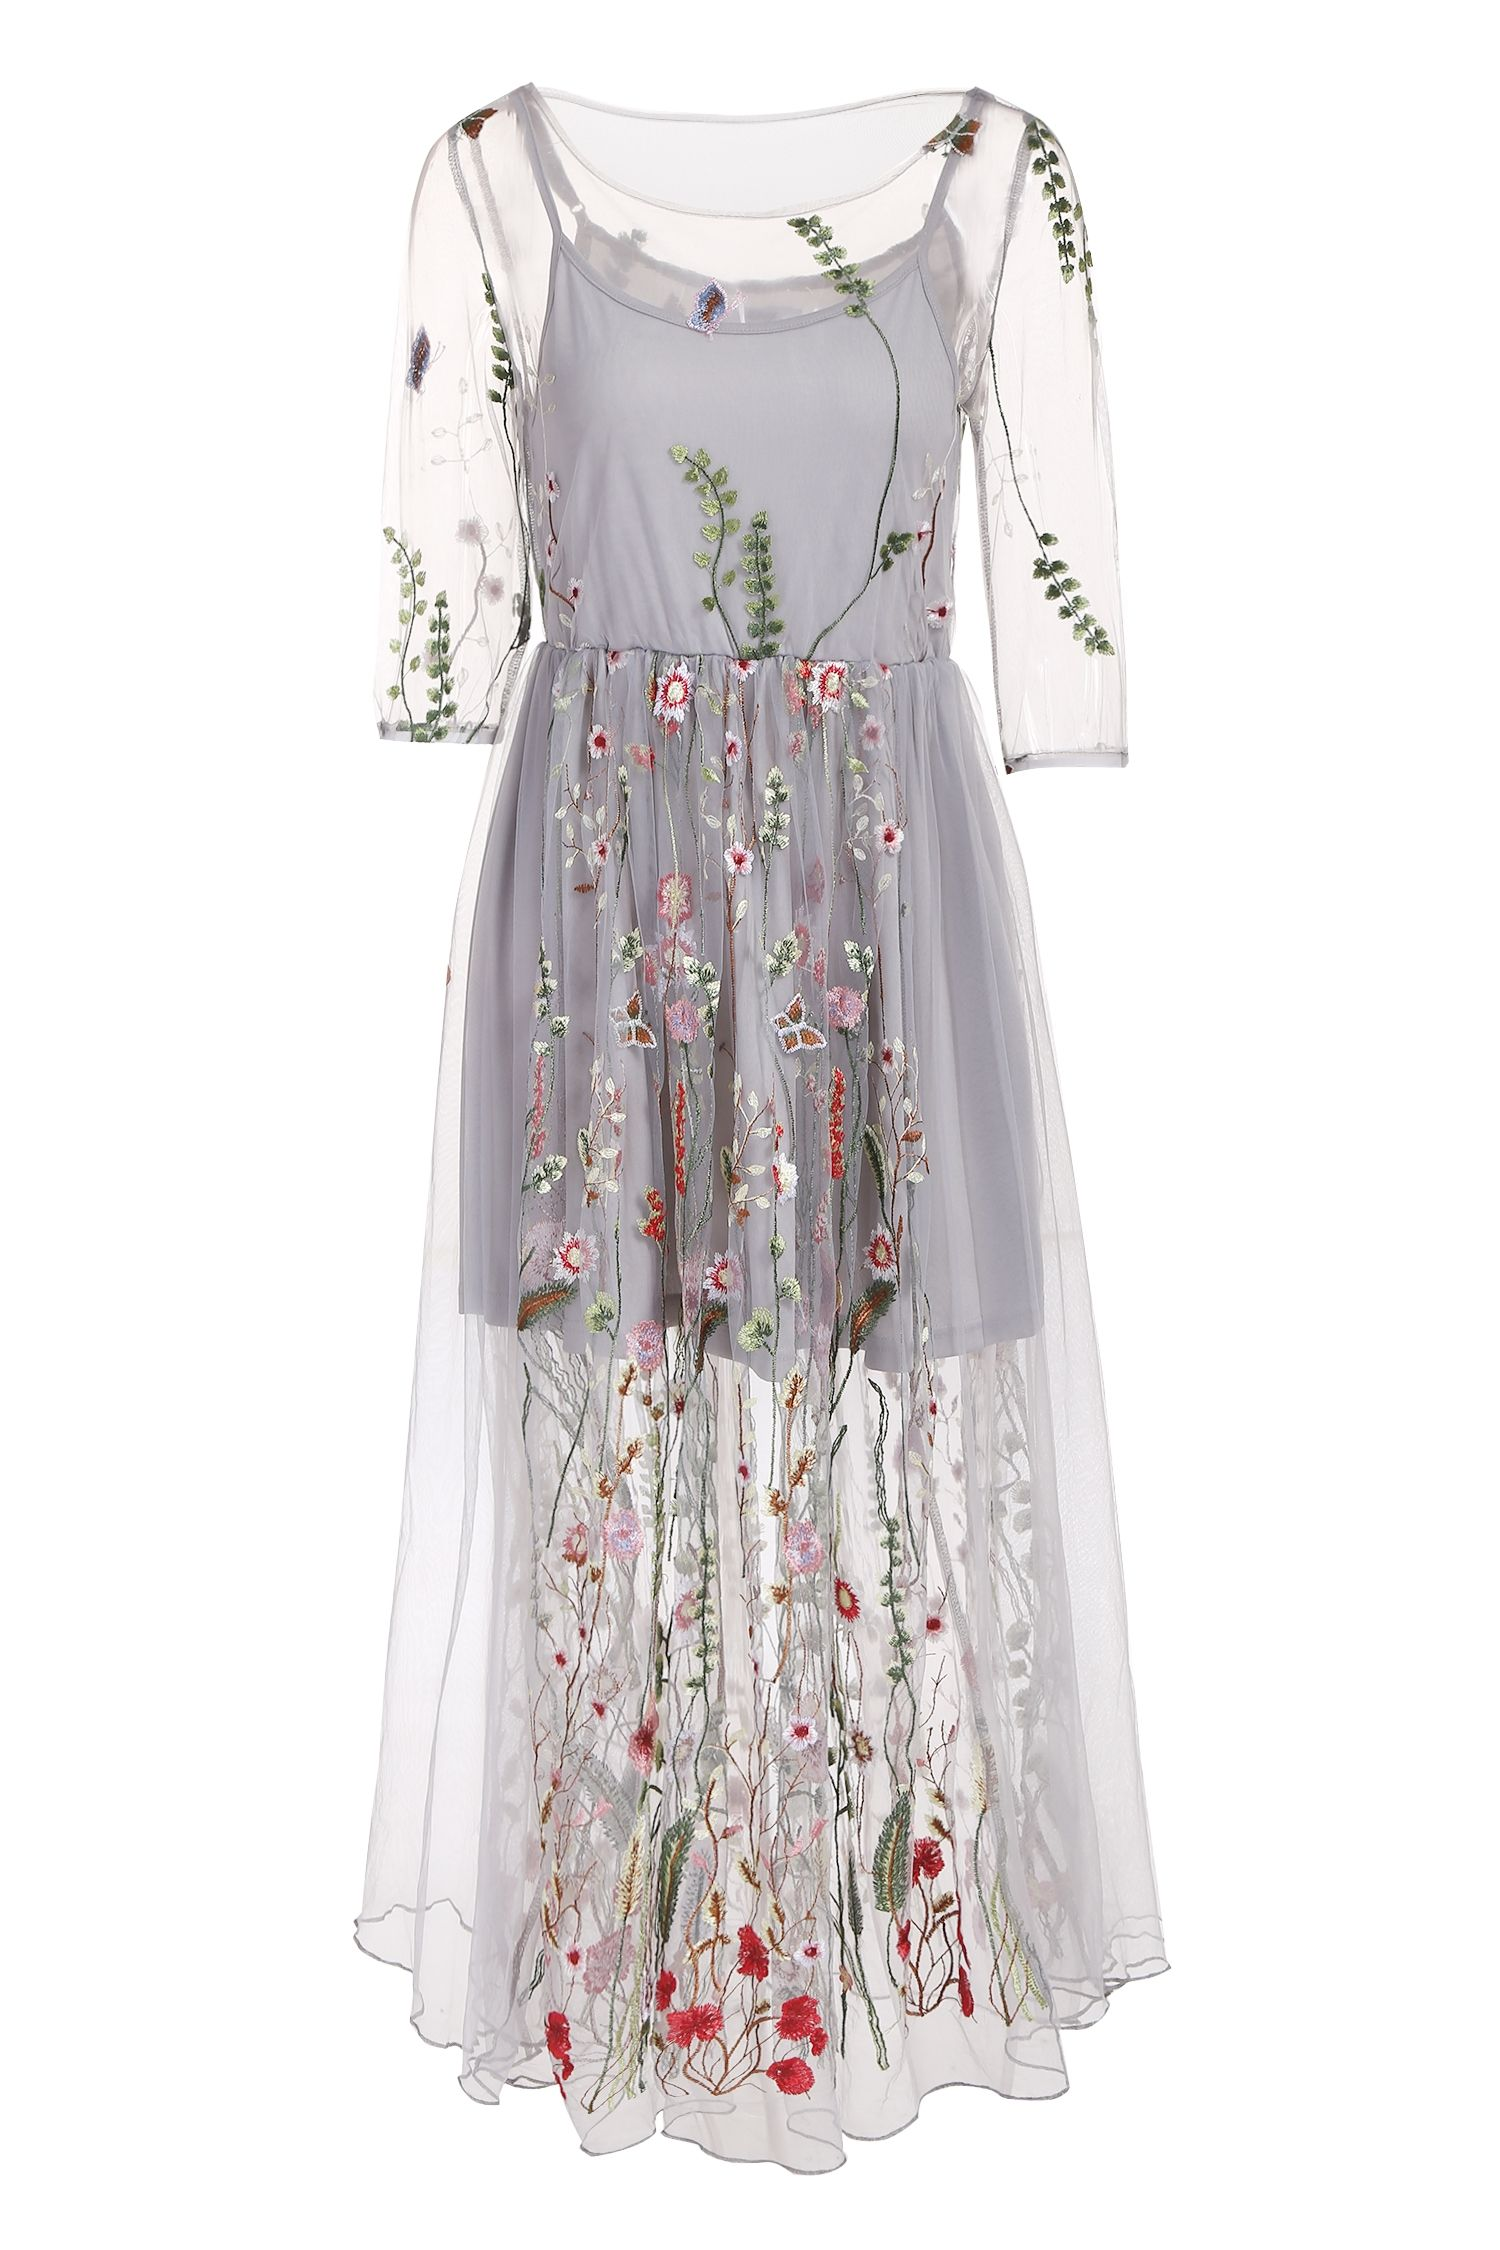 Mono style sleeve embroidery oneck tulle mesh dress mesh